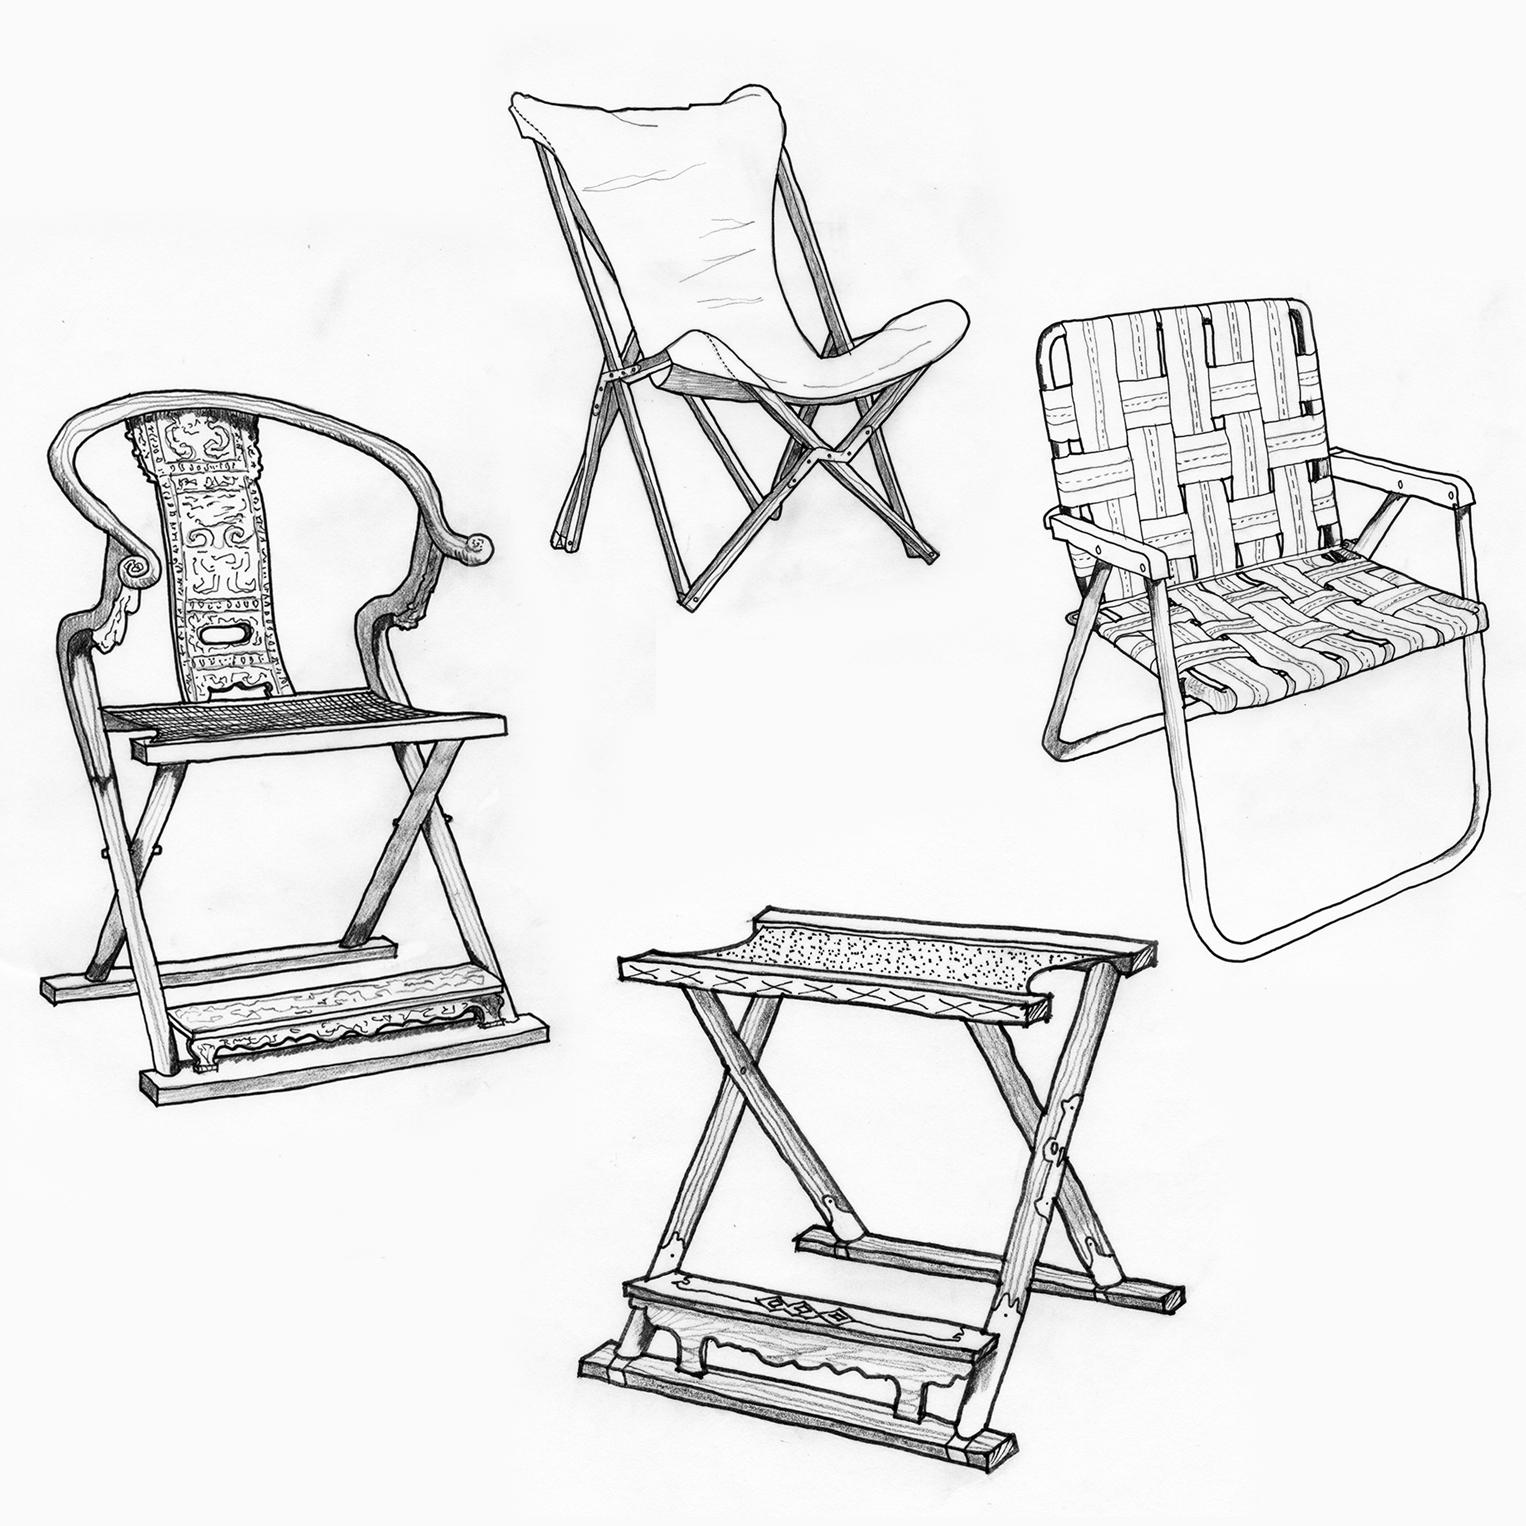 Klismos chair drawing - Rybczynski Believes The Oldest Kind Of Chair Was Not A Throne But A Folding Chair